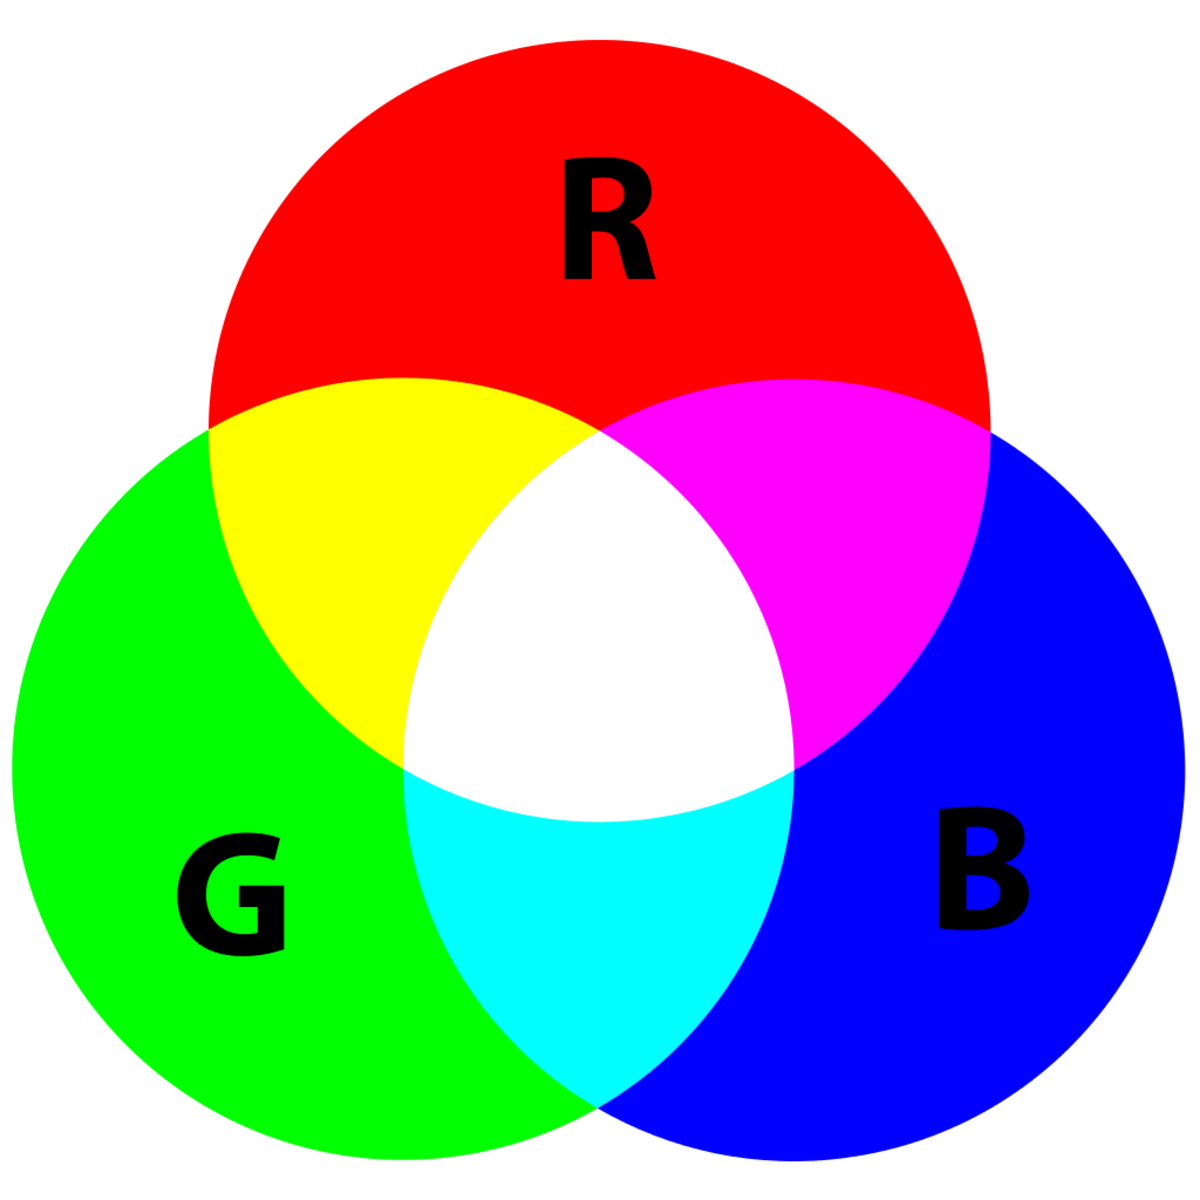 The Color Wheel showing the mixture of red, green, and blue light to make white light.